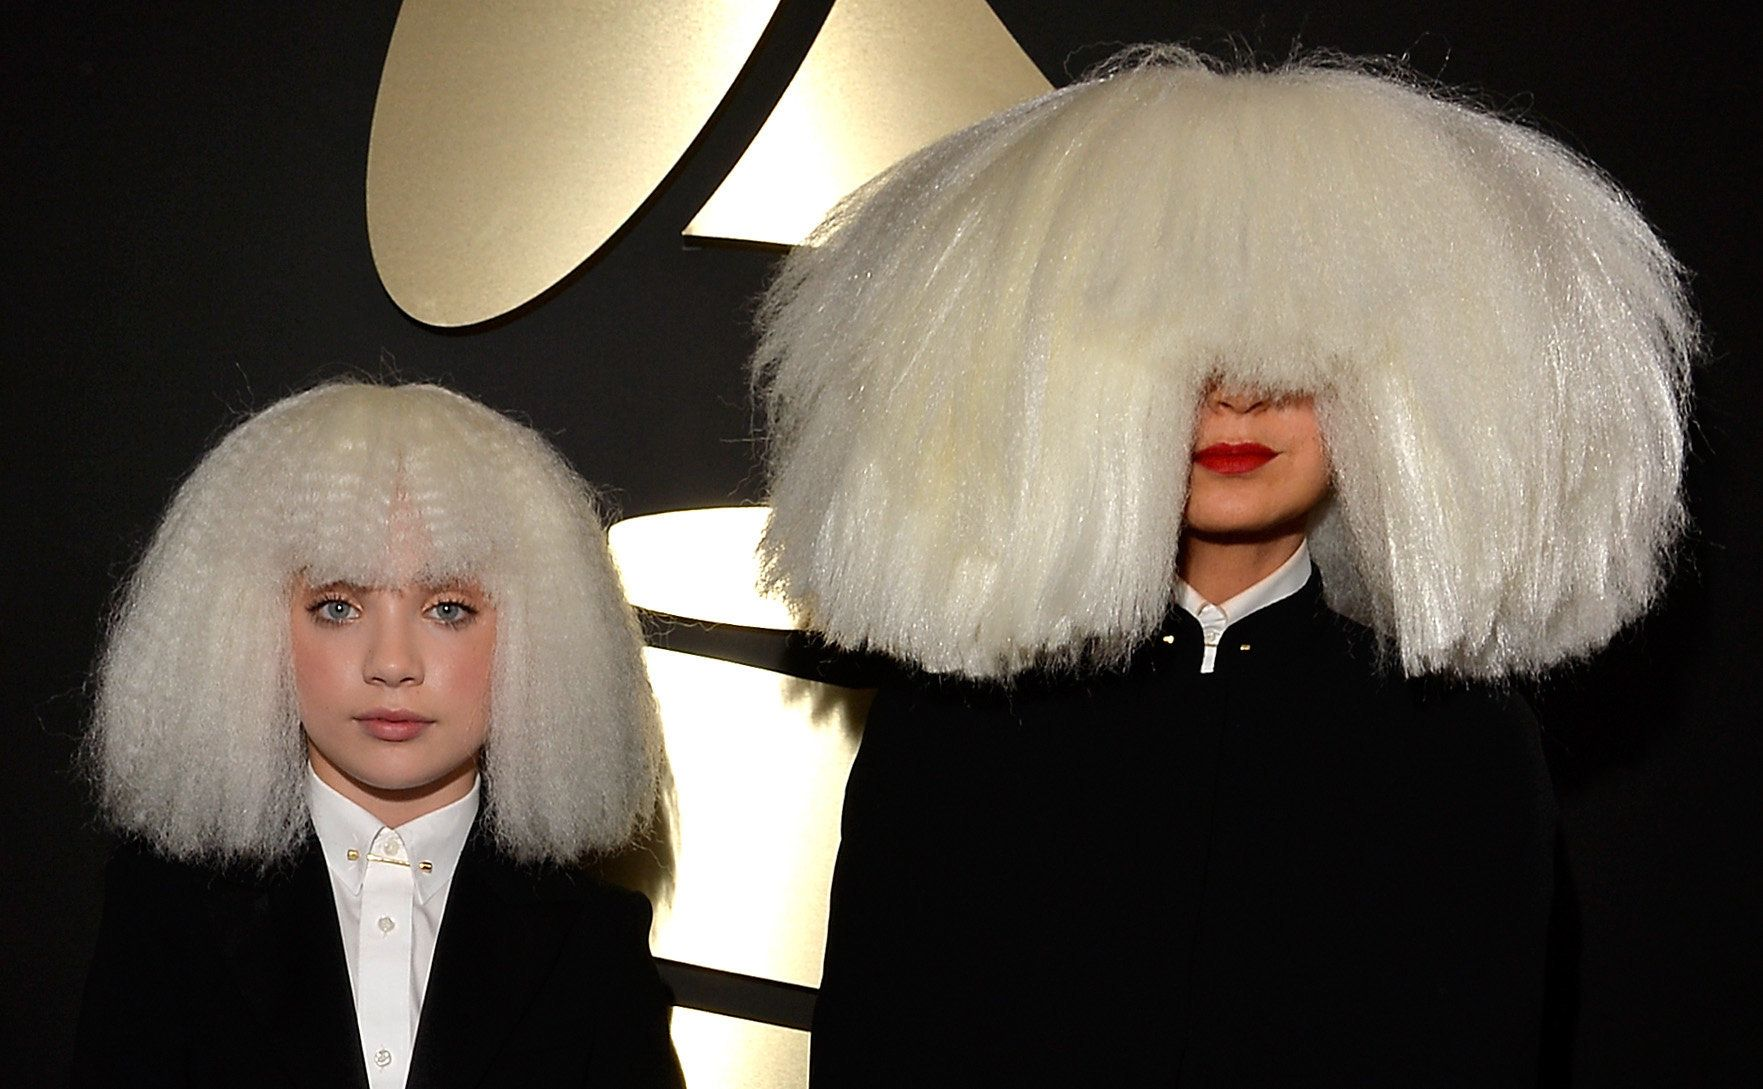 LOS ANGELES, CA - FEBRUARY 08:  Dancer Maddie Ziegler (L) and singer/songwriter Sia attend The 57th Annual GRAMMY Awards at the STAPLES Center on February 8, 2015 in Los Angeles, California.  (Photo by Lester Cohen/WireImage)